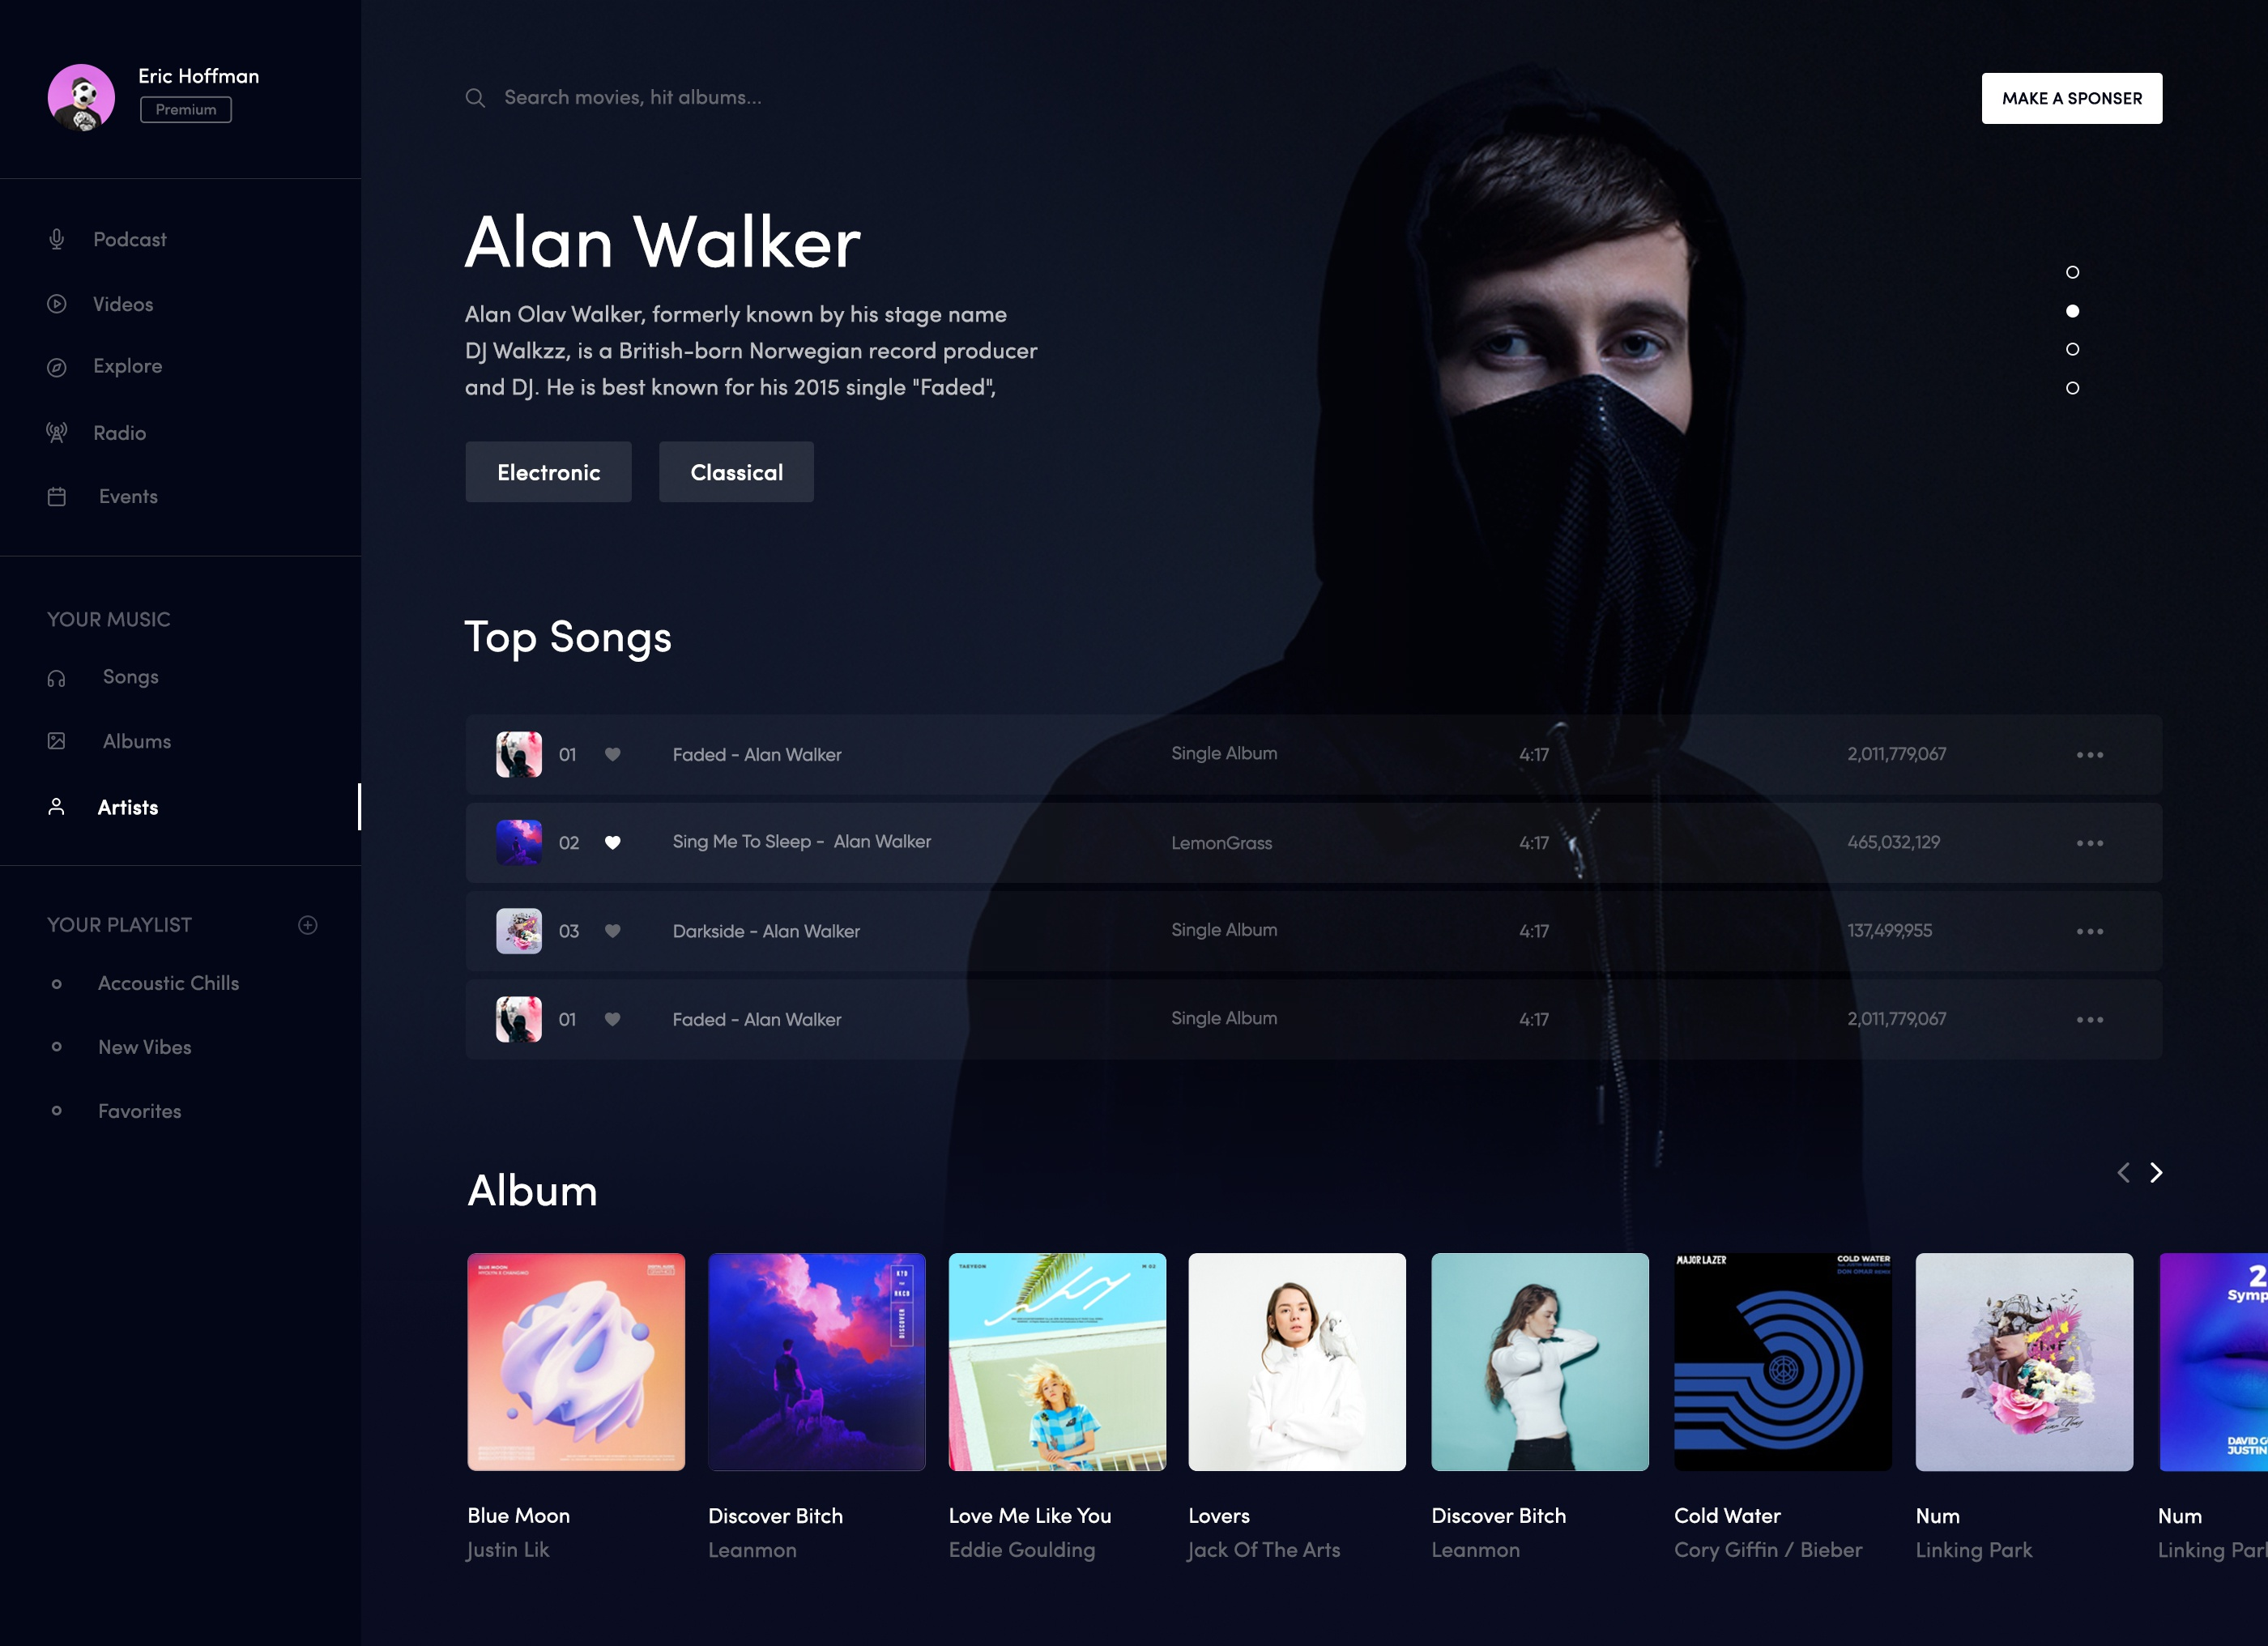 Music ui desktop design artist page